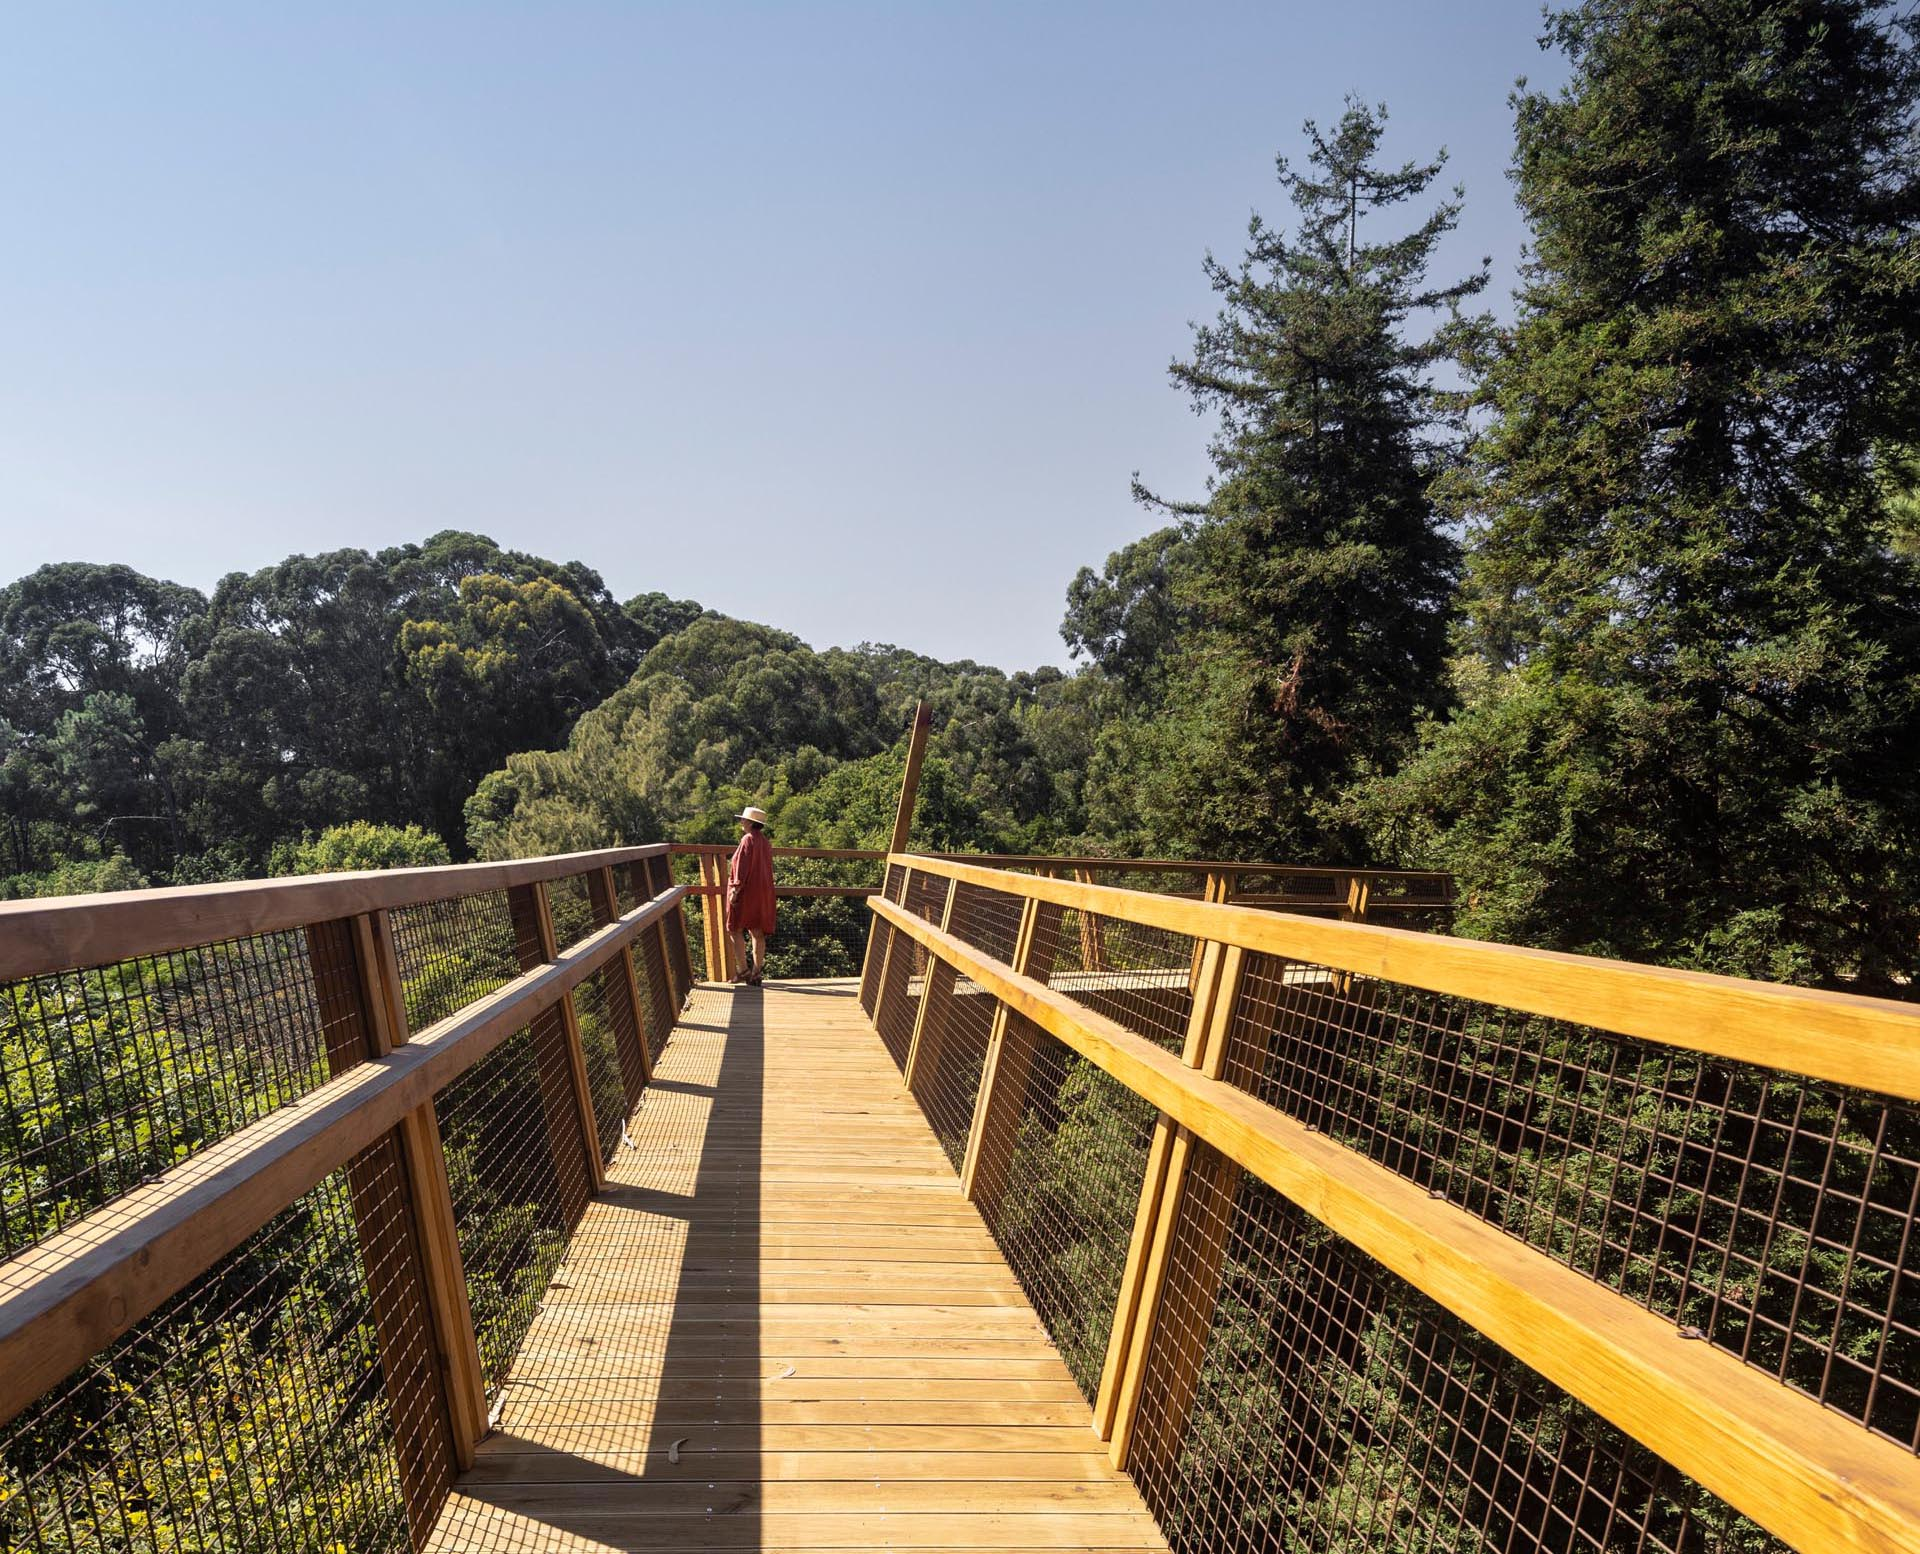 A raised wood walkway weaves through the treetops of a park in Portugal.